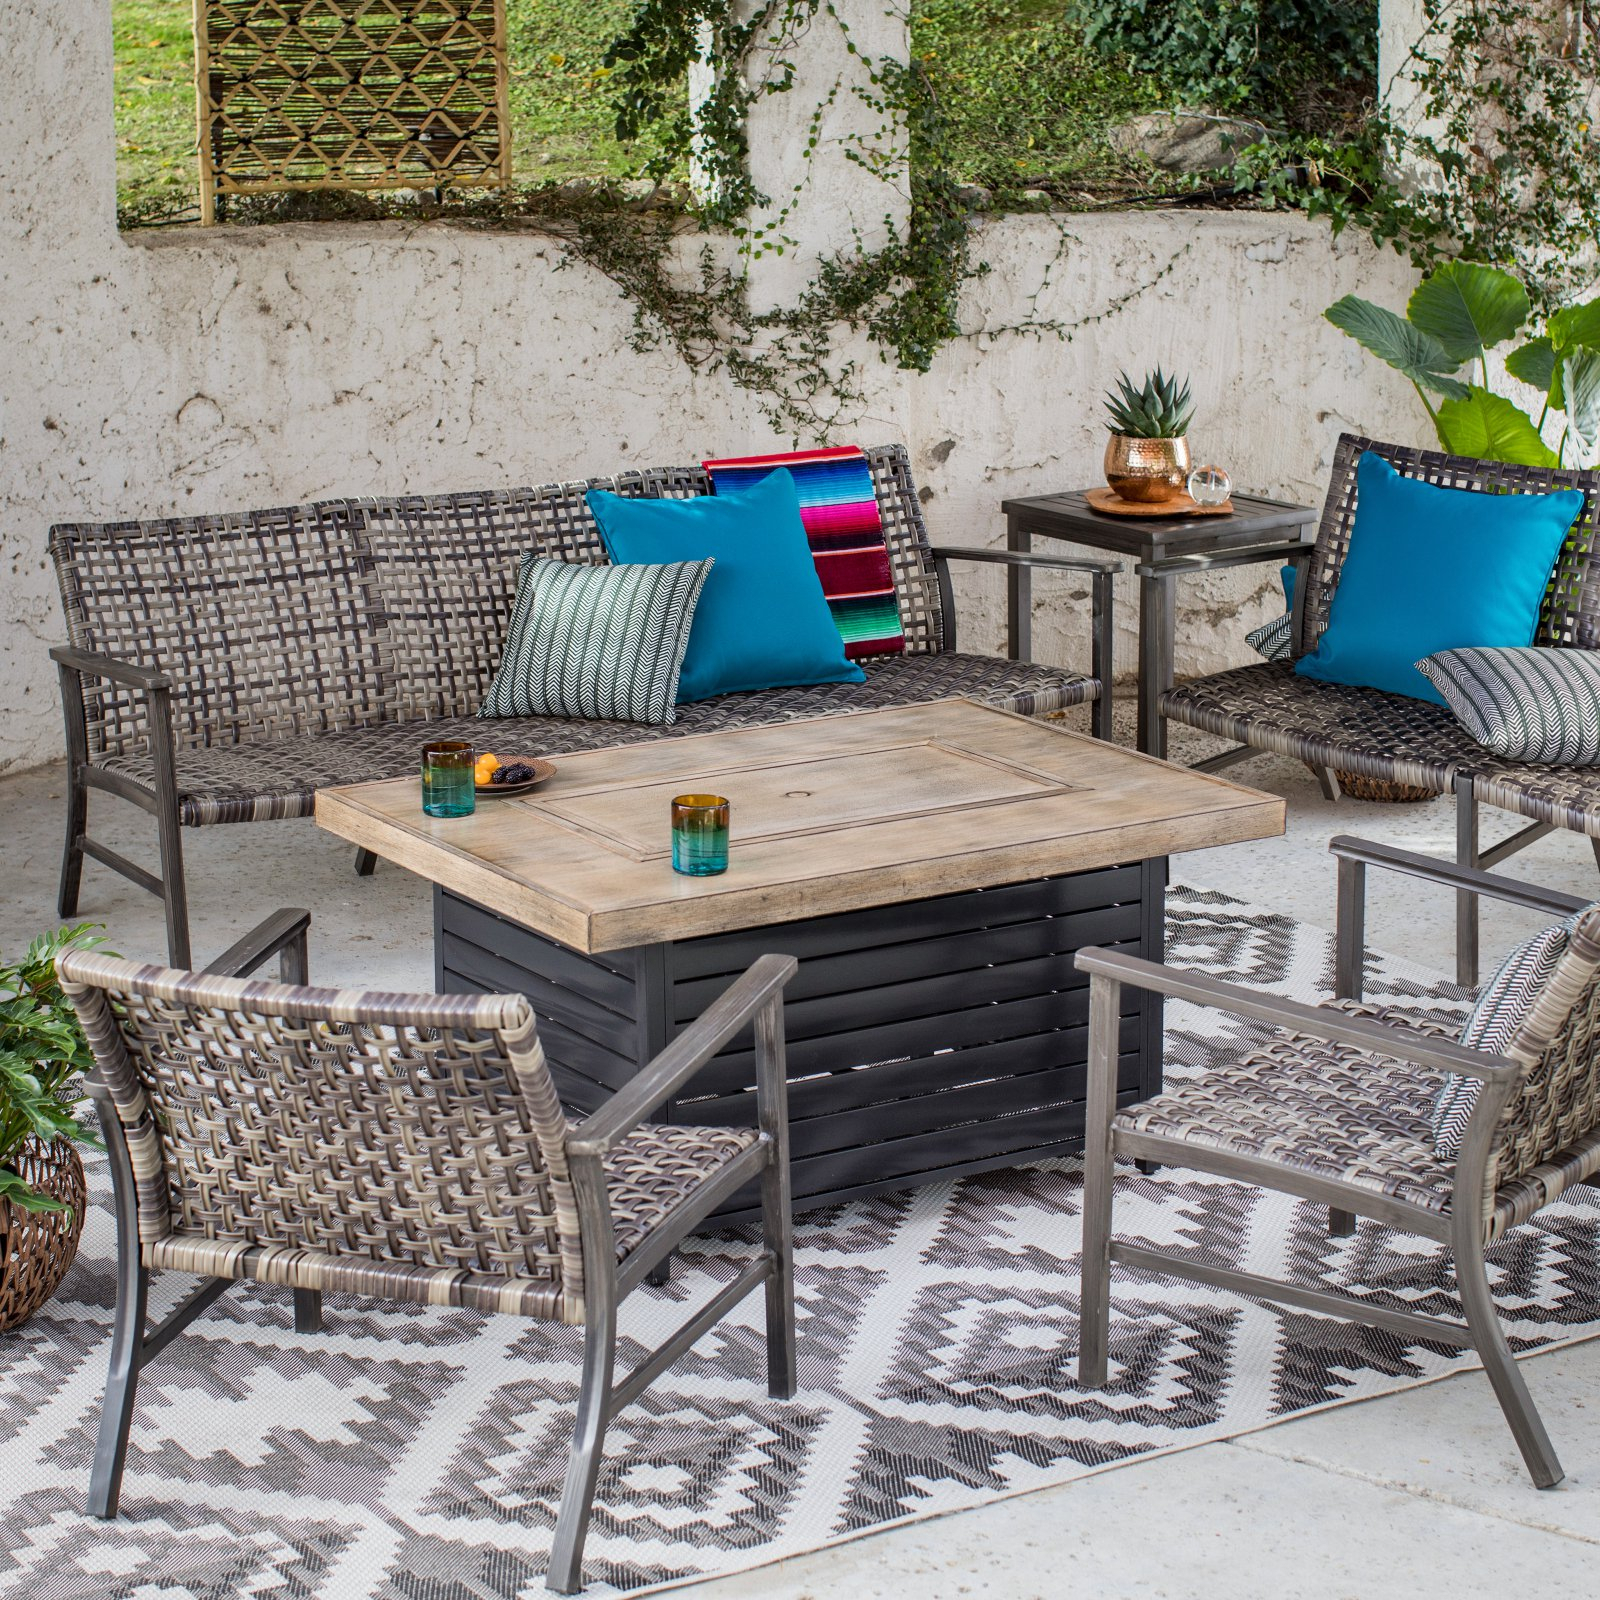 Belham Living Eastport And Red Ember Seeley Fire Pit Patio In Outdoor Wicker Plastic Half Moon Leaf Shape Porch Swings (View 19 of 25)